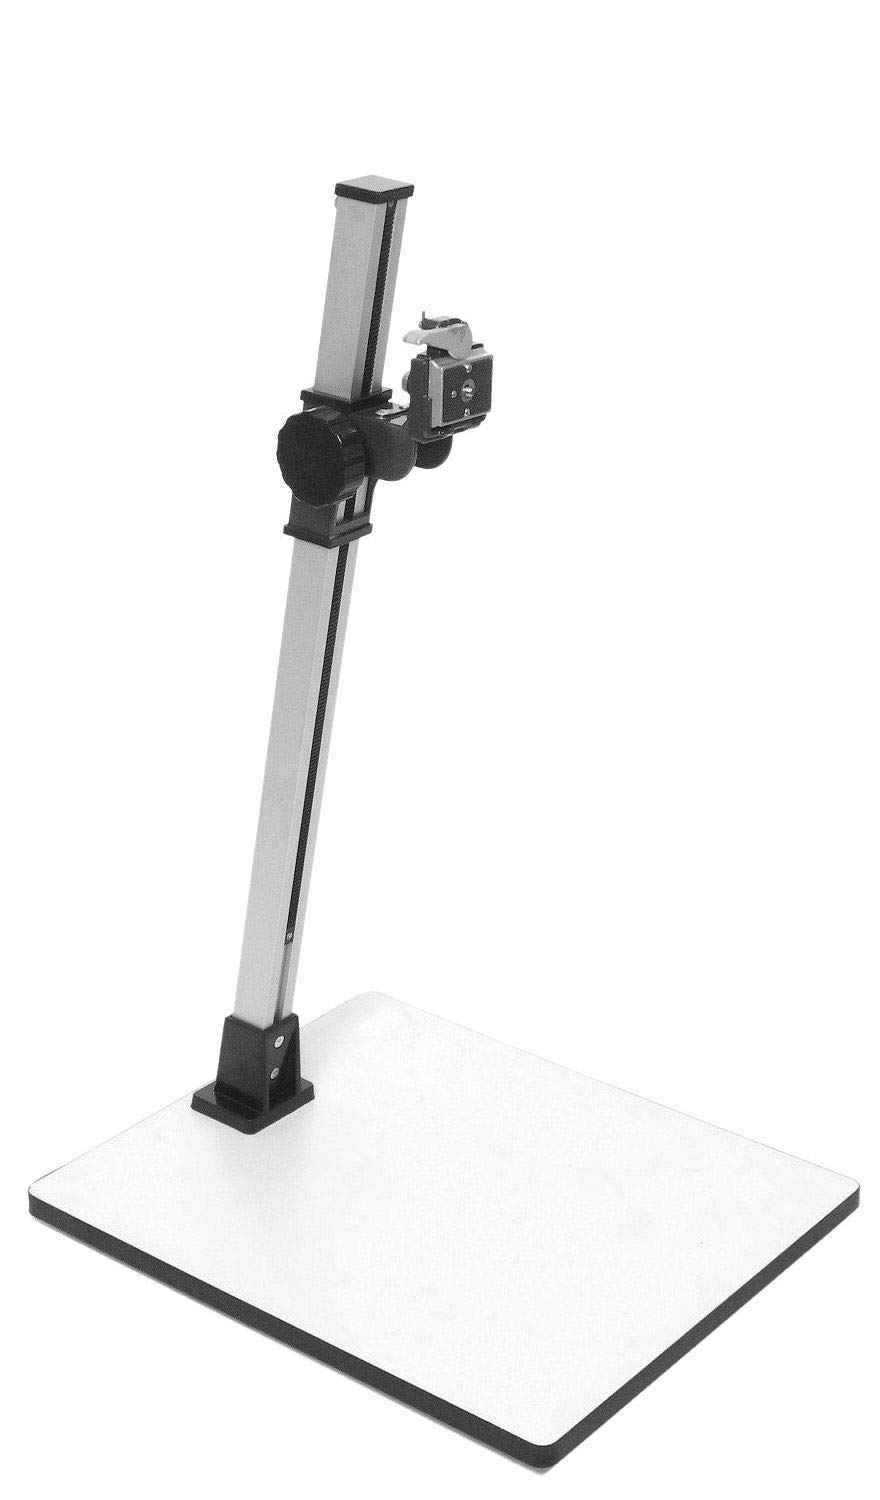 ALZO Copy Stand for Macro Tabletop Studio and Product Photography by ALZO digital (Image #1)